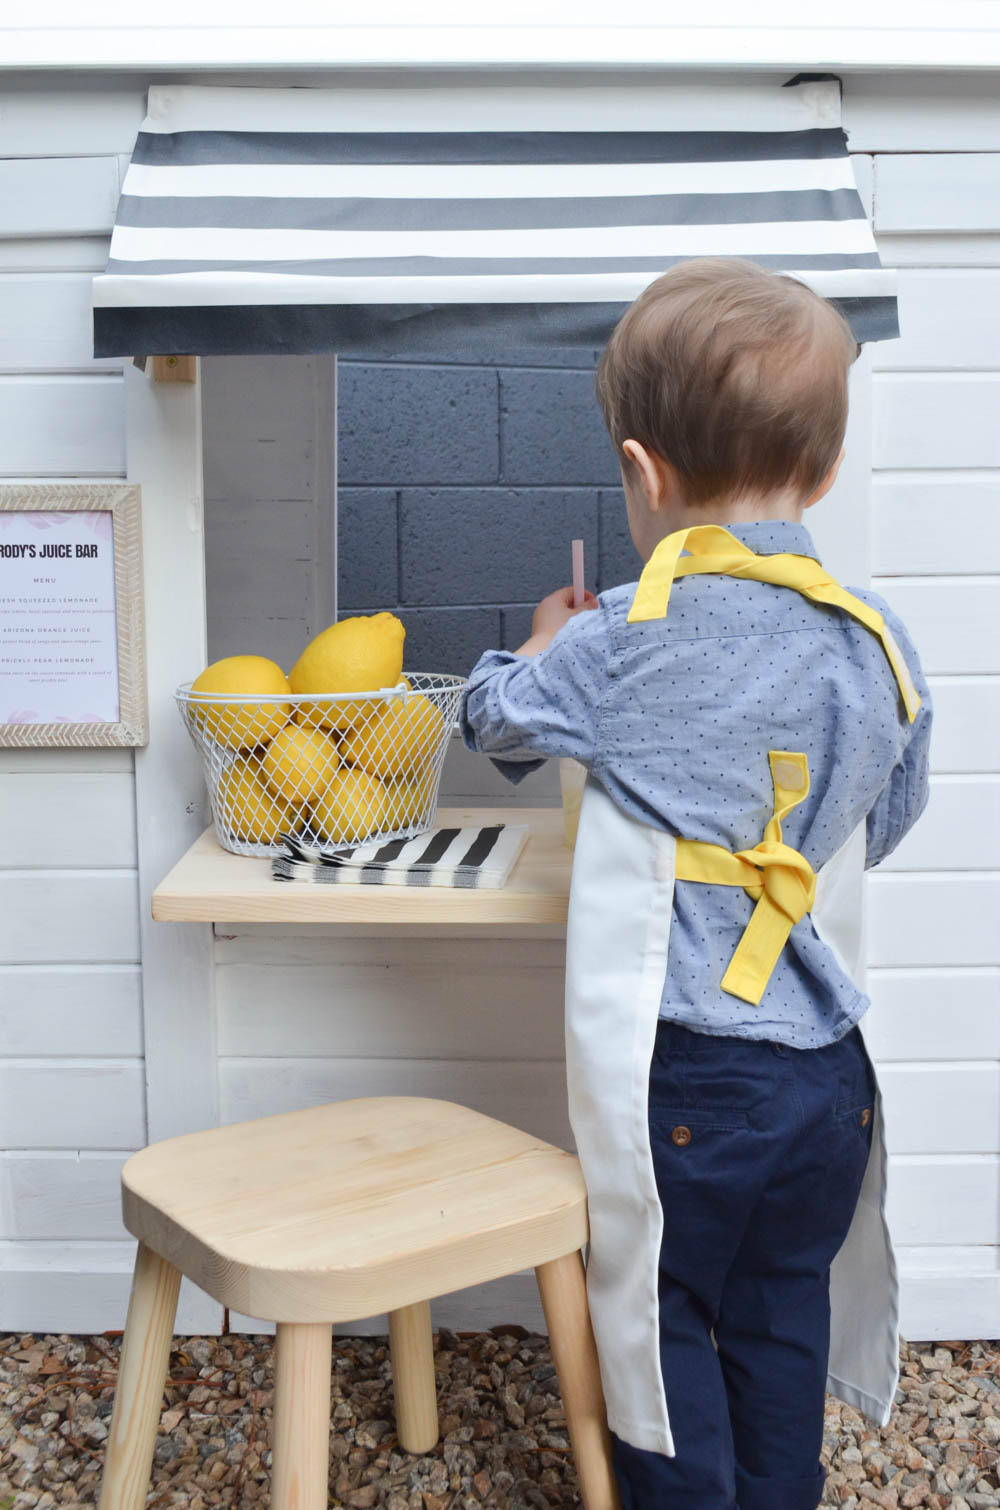 Toddler Playhouse Juice Bar DIY Playhouse Renovation